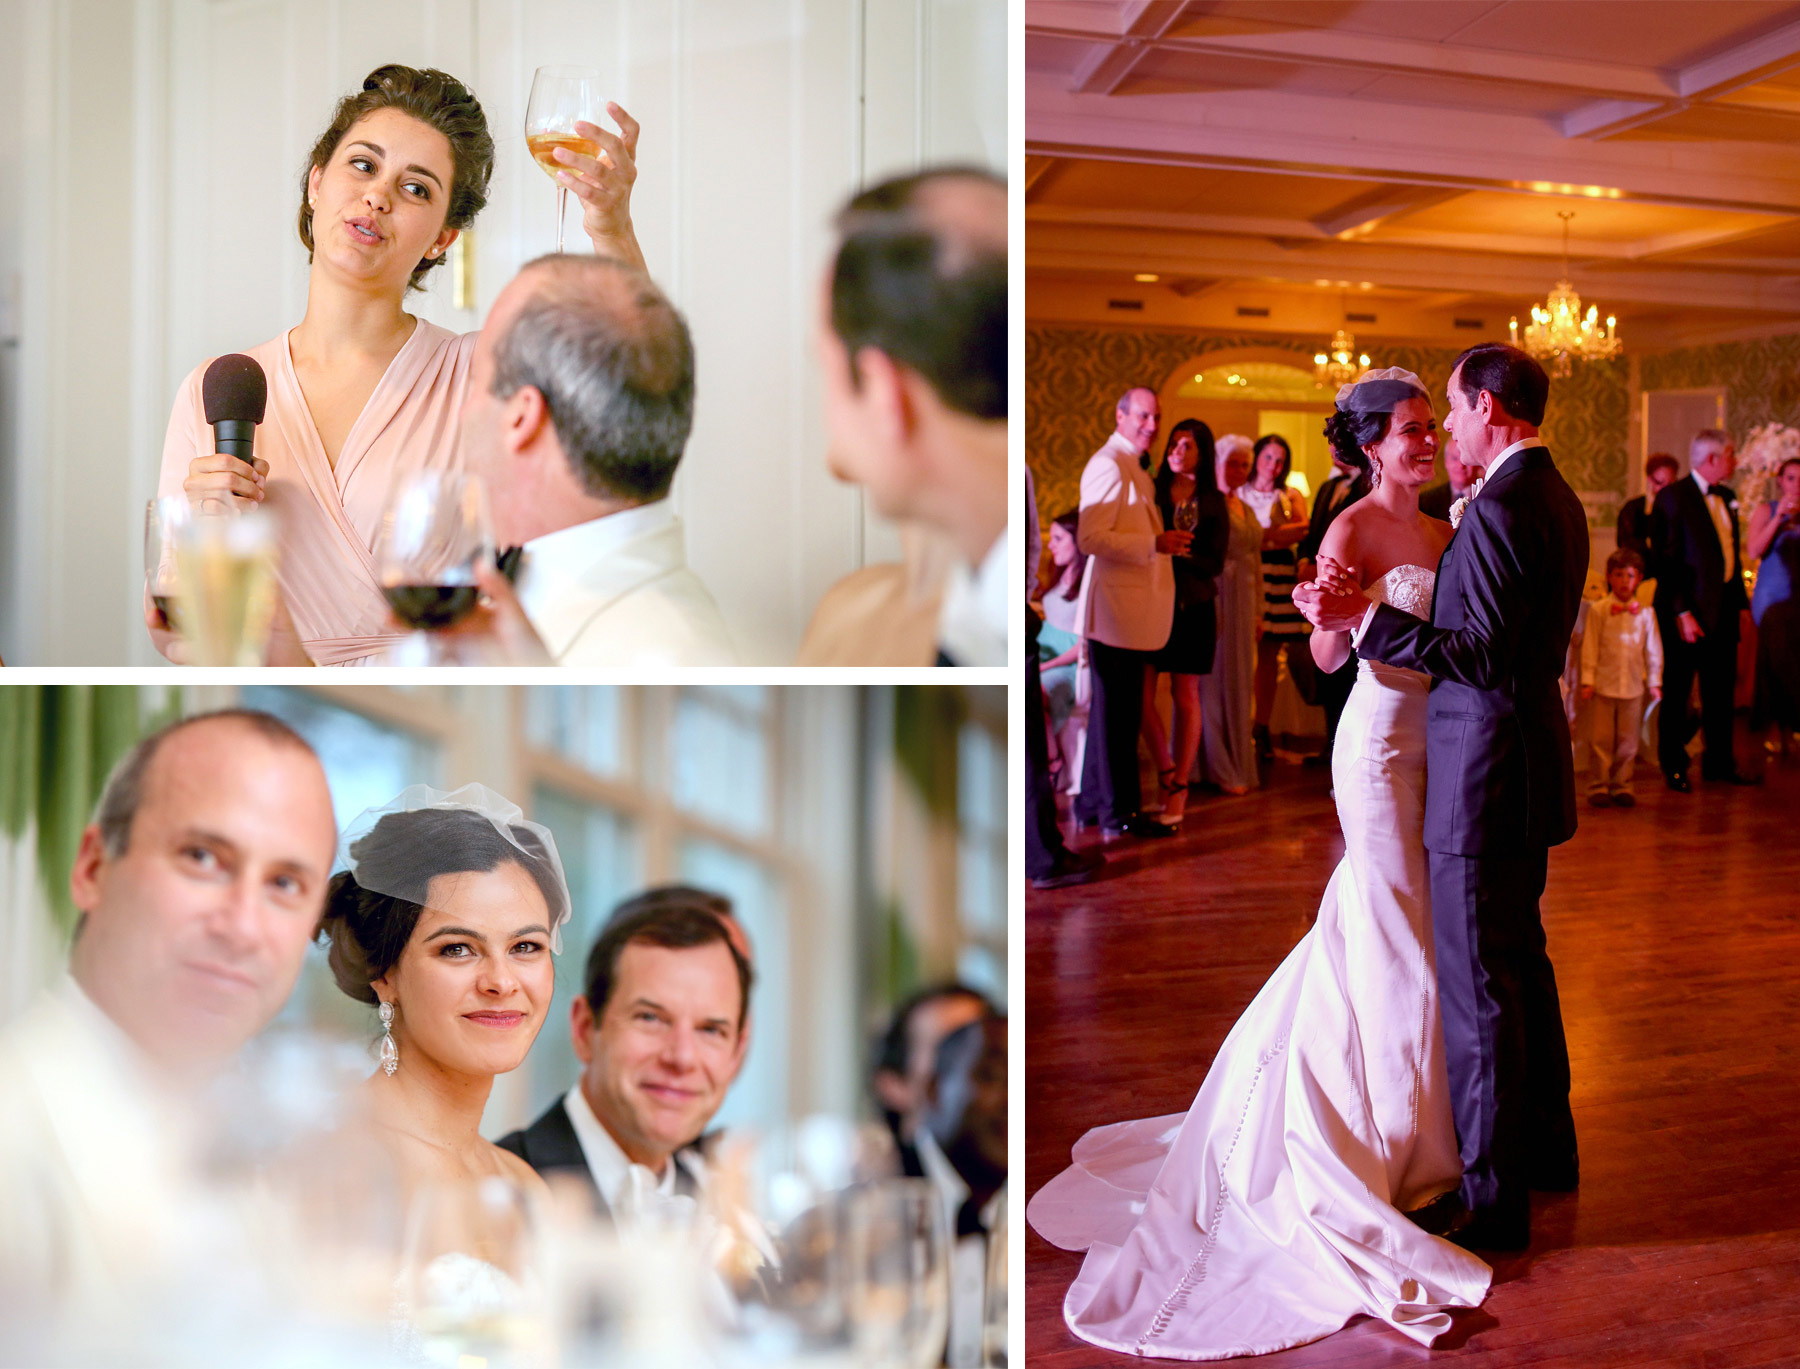 14-Minneapolis-Minnesota-Wedding-Photography-by-Vick-Photography-at-Minikahda-Country-Club-Reception-Leticia-&-Jay.jpg